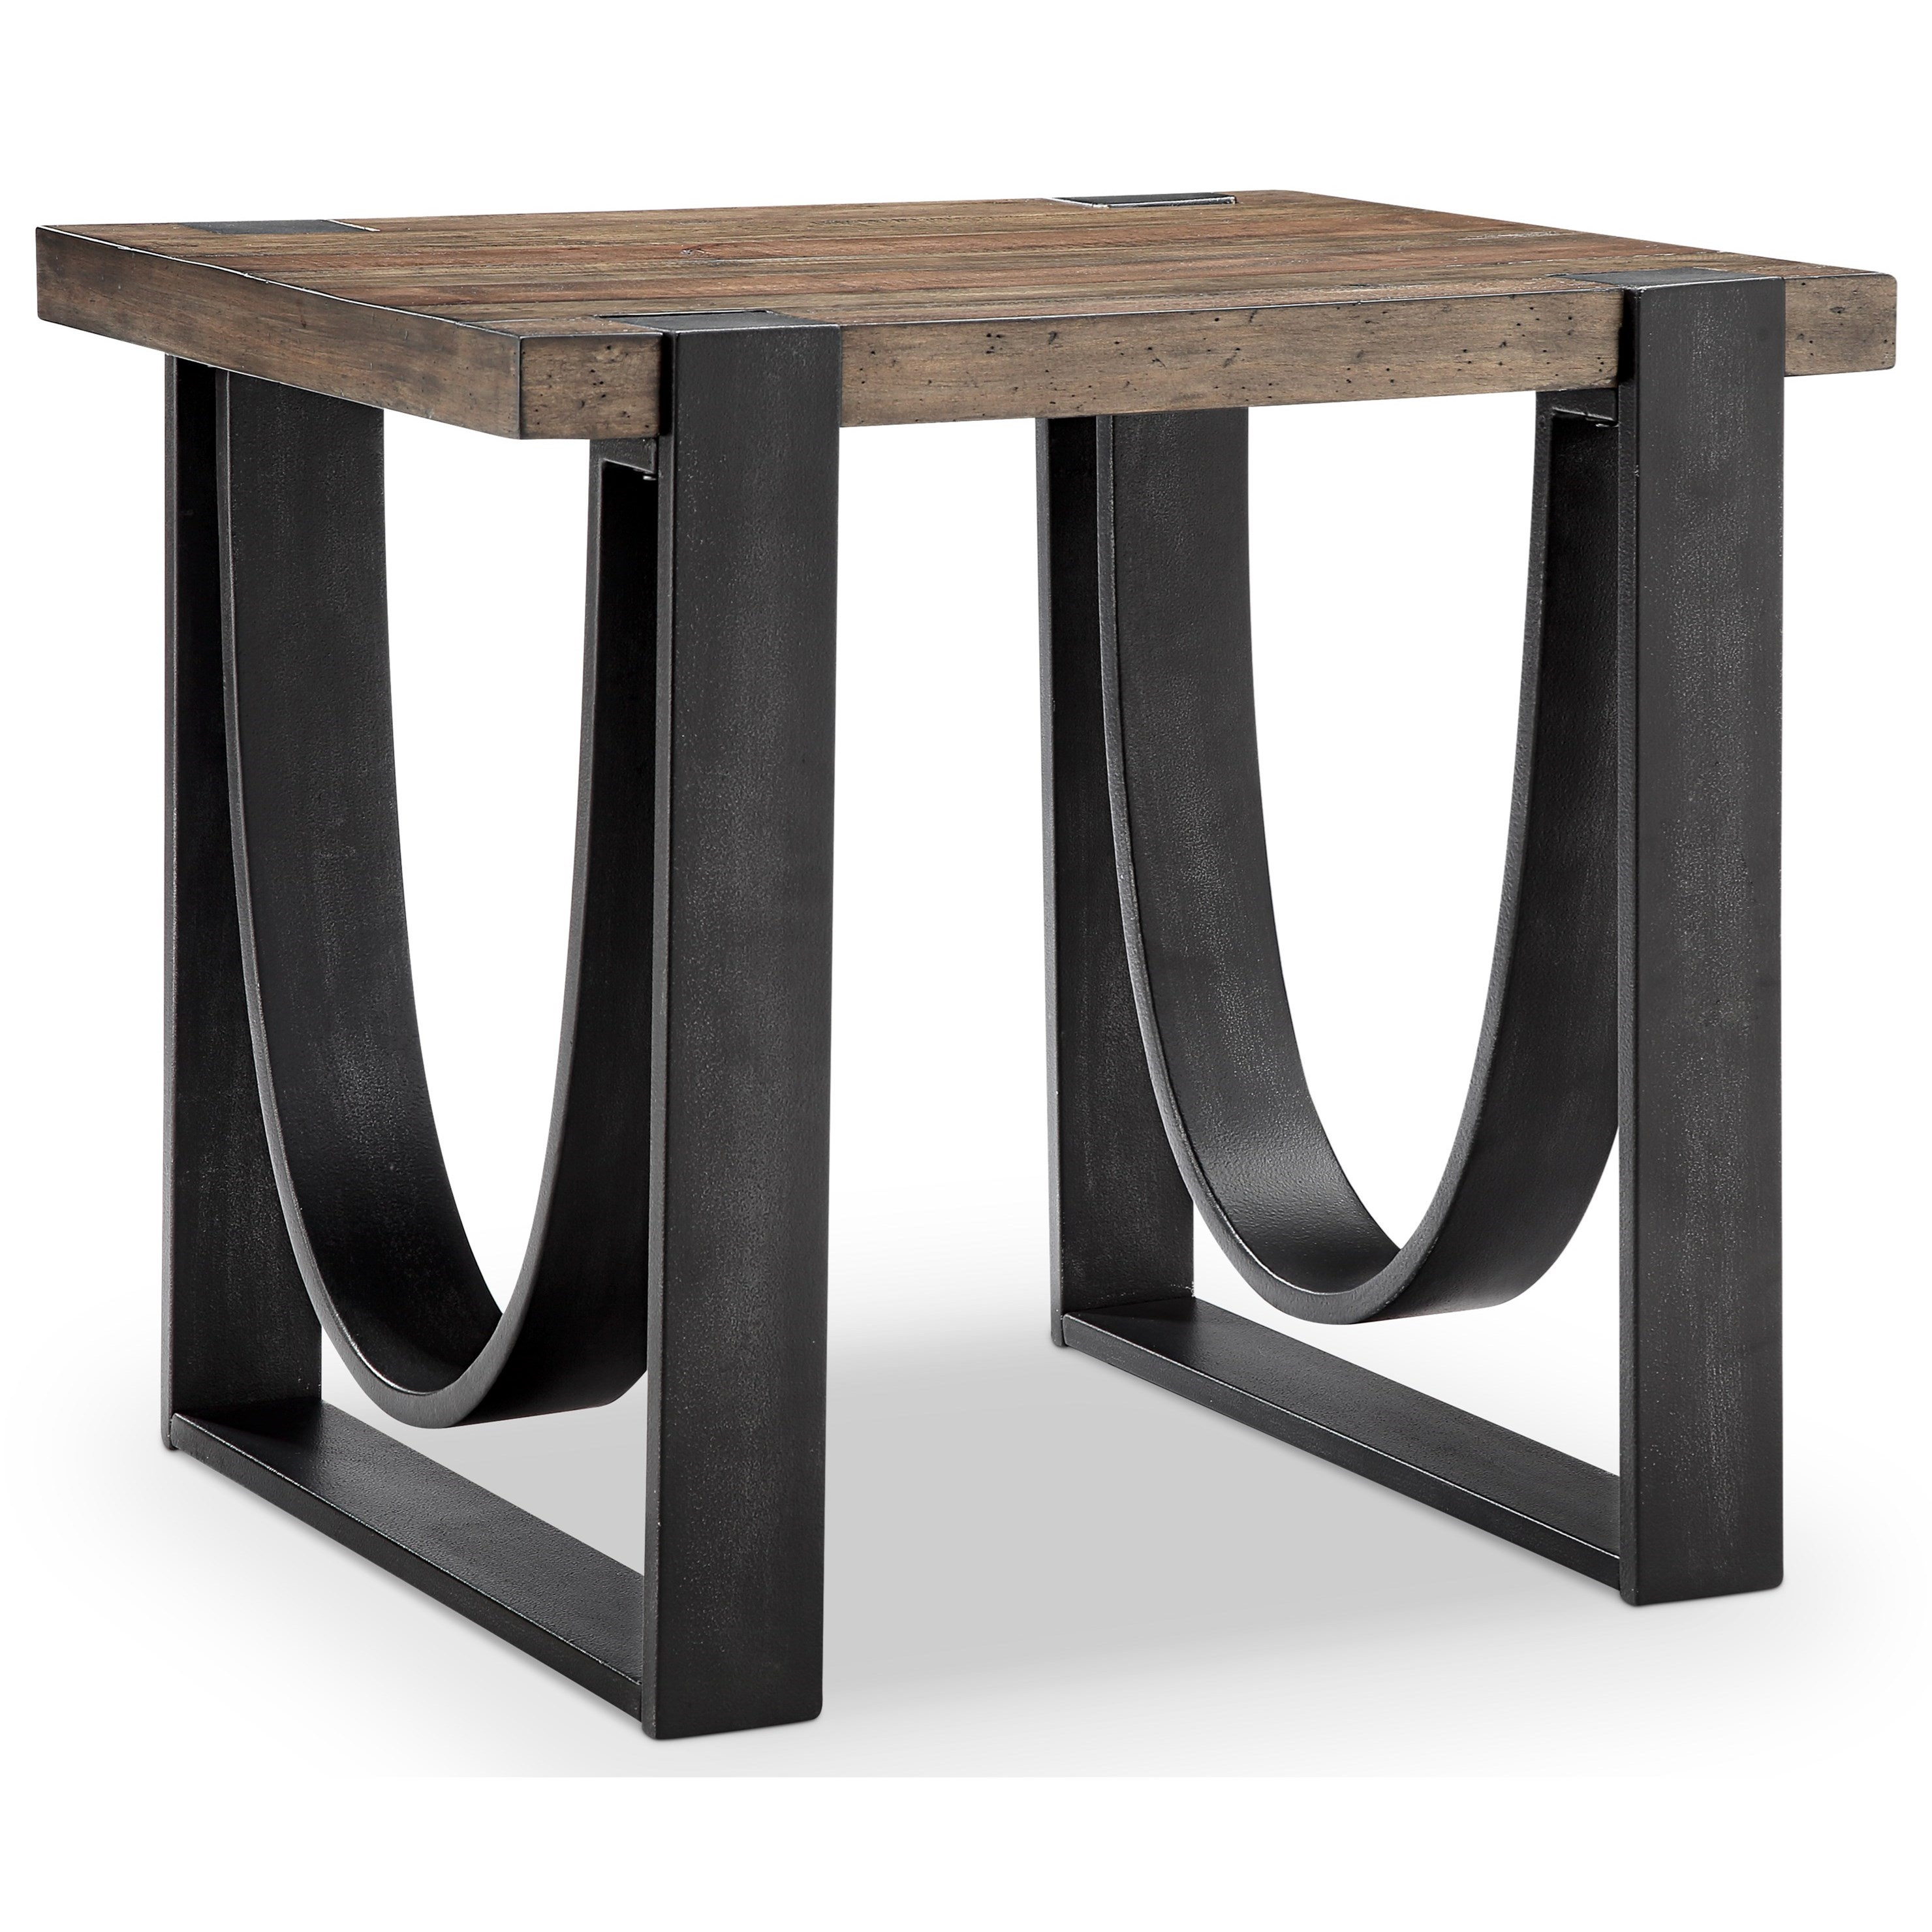 Rustic Wood End Table Bowden Rustic Rectangular End Table Of Solid Wood By Magnussen Home At Darvin Furniture